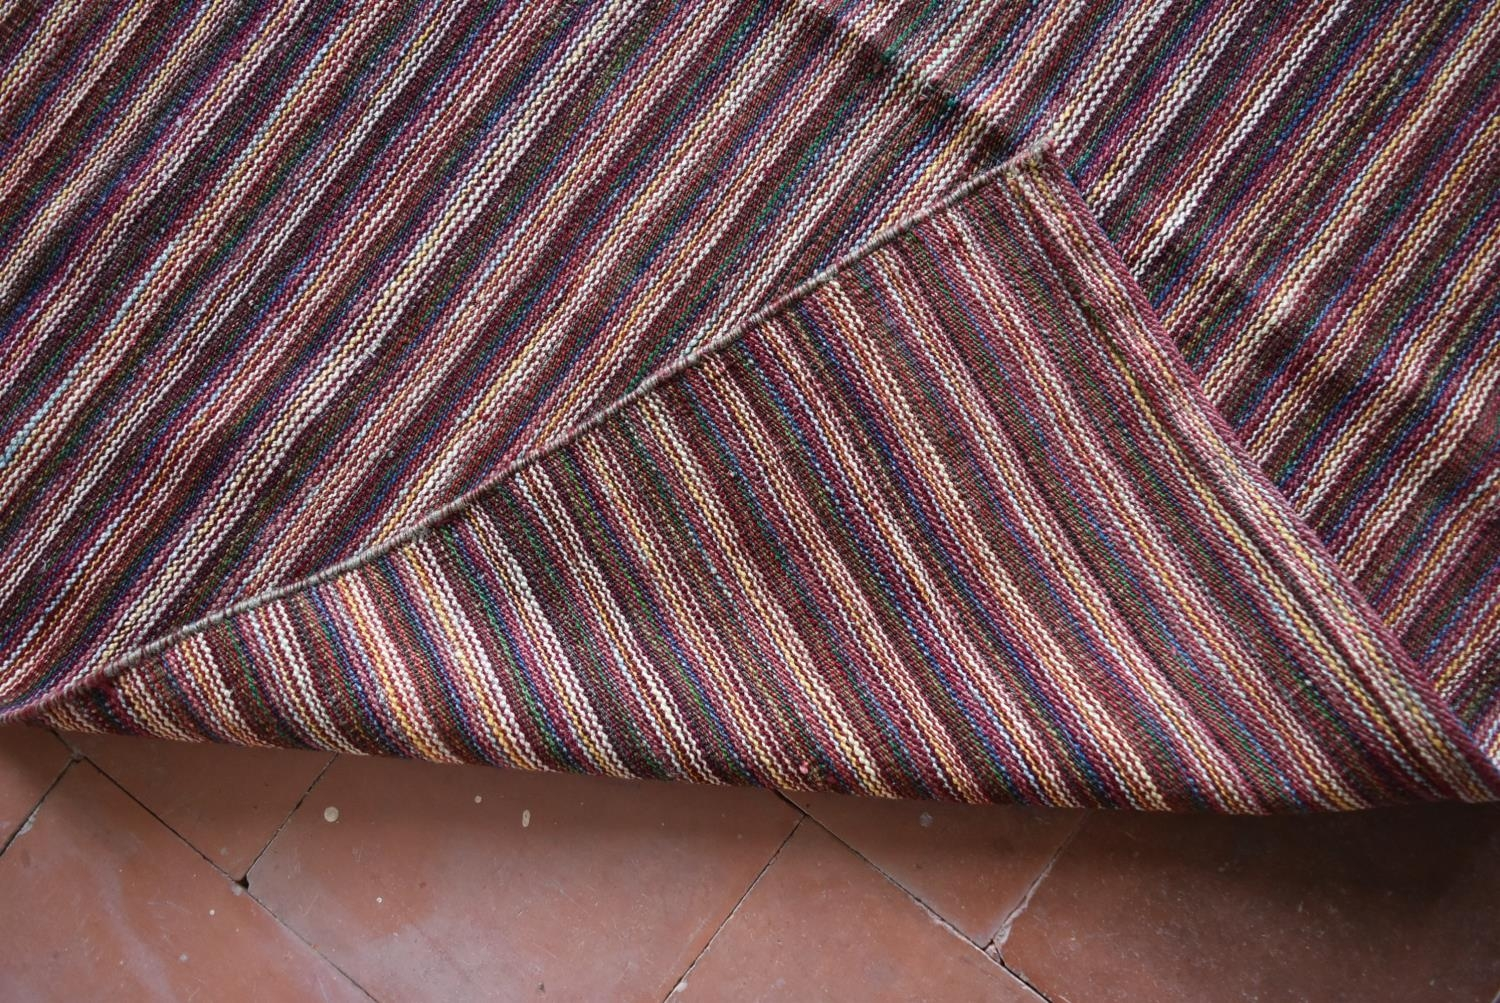 A large Modern Kilim with woven bands in hues of burgundy, cream and blue. L.332xW.247cm - Image 3 of 4